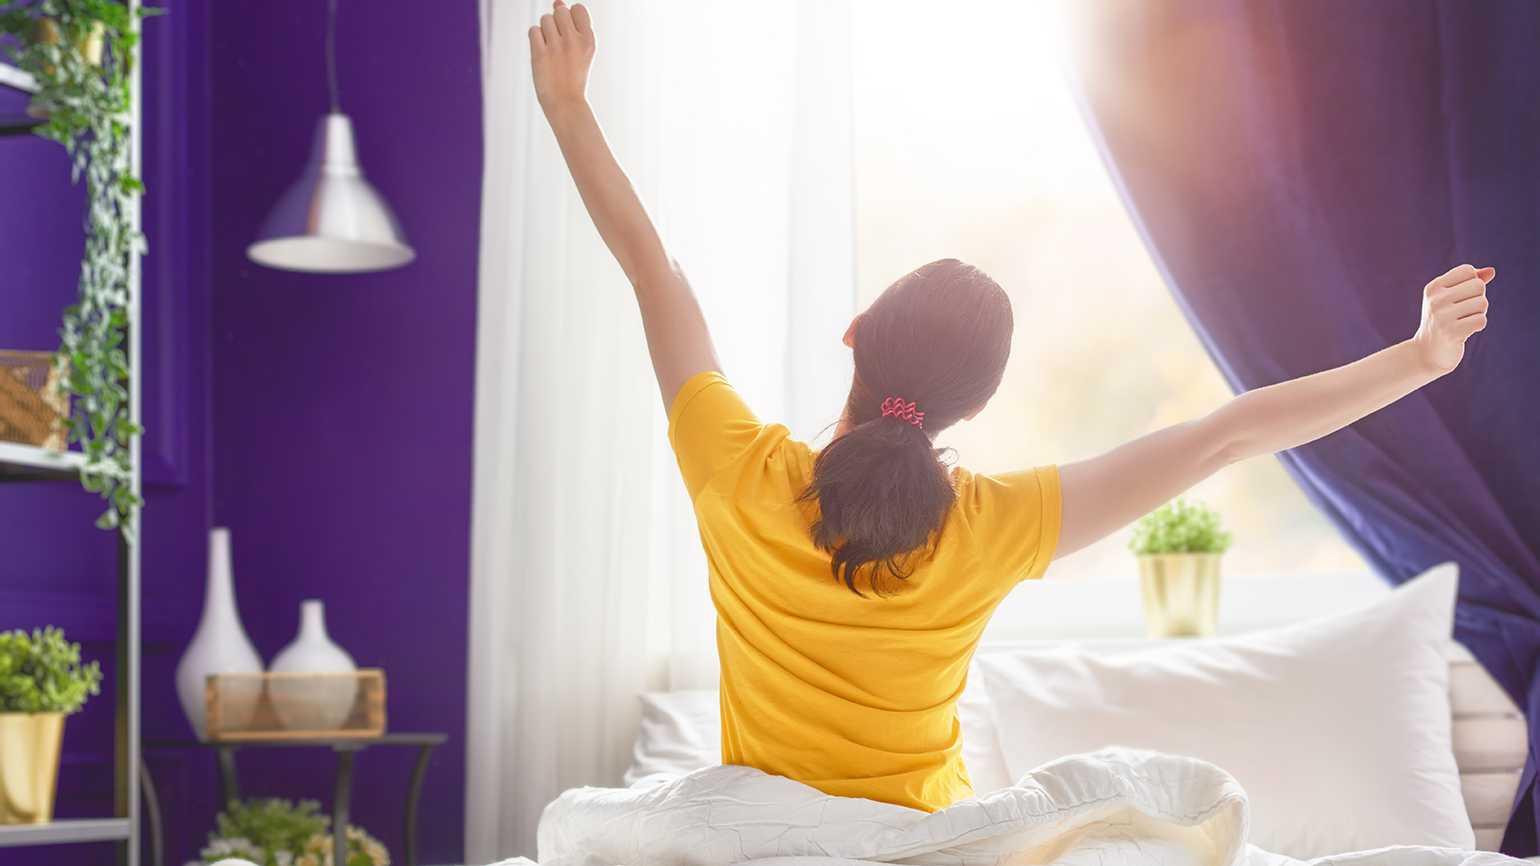 A young woman stretches as she welcomes a new day